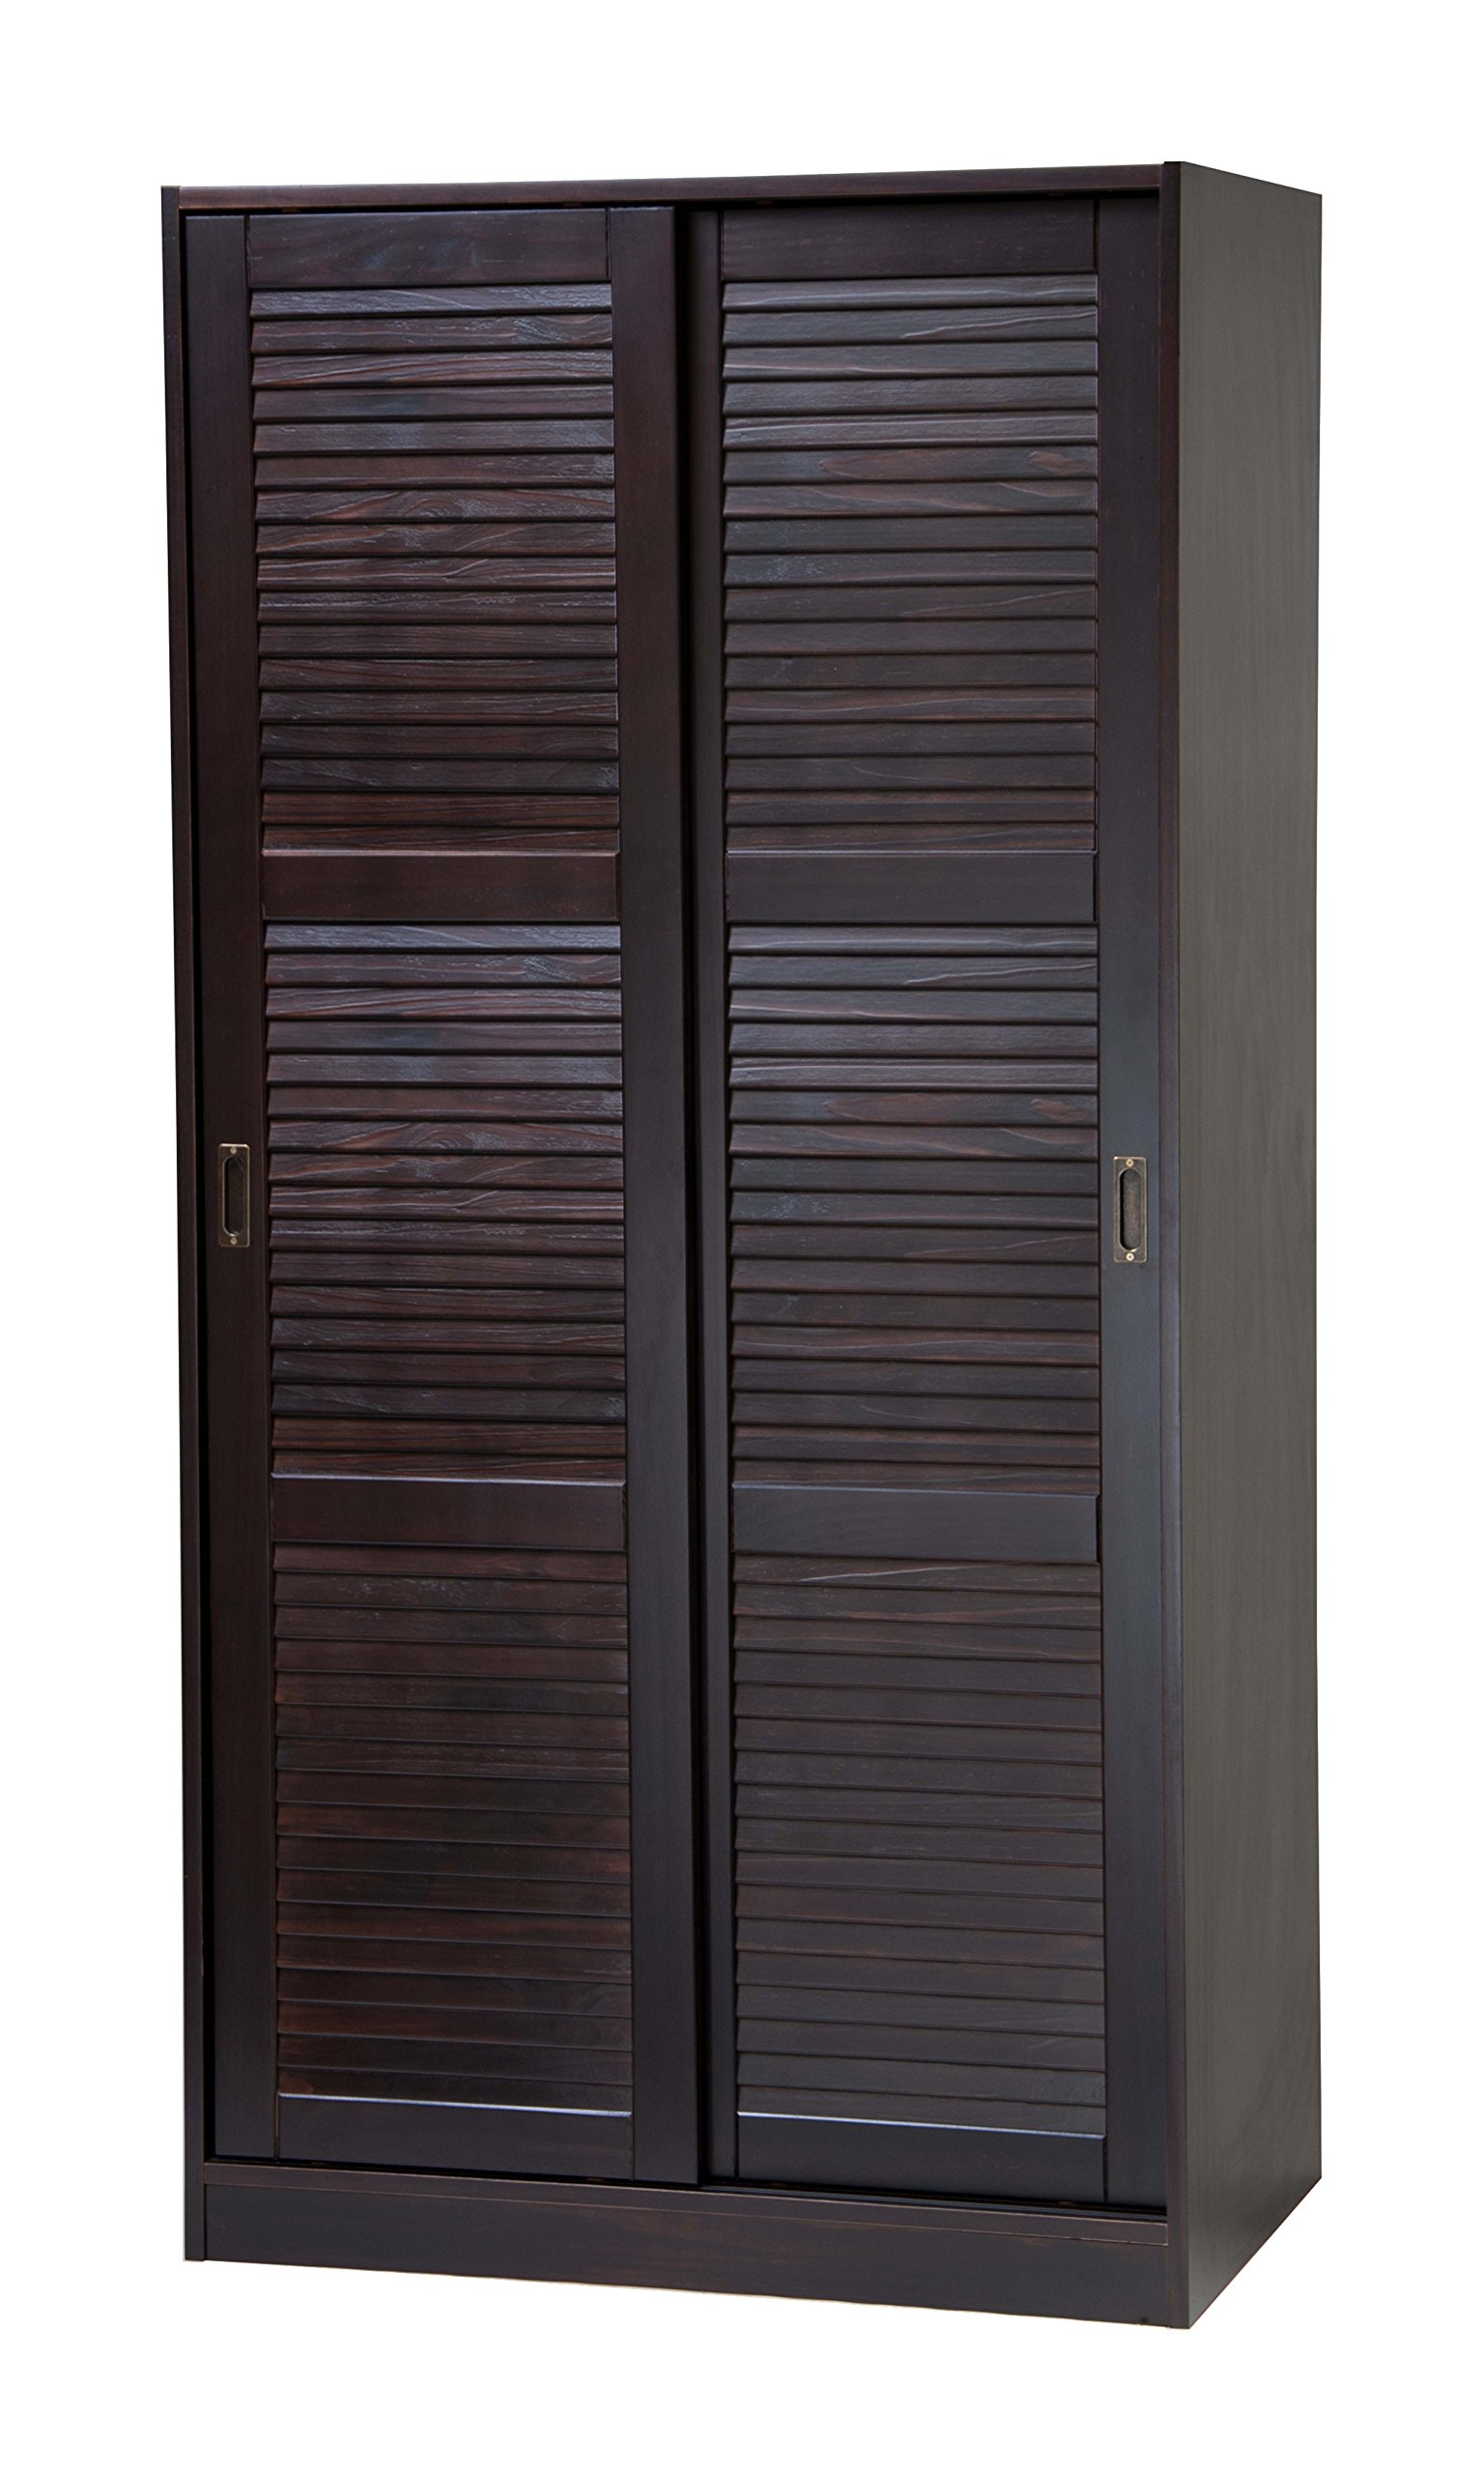 100% Solid Wood 2-Sliding Door Wardrobe/Armoire/Closet/Mudroom Storage by Palace Imports, Java Color. 1 Large Shelf, 1 Clothing Rod Included. Extra Optional Shelves Sold Separately. Requires Assembly by Palace Imports